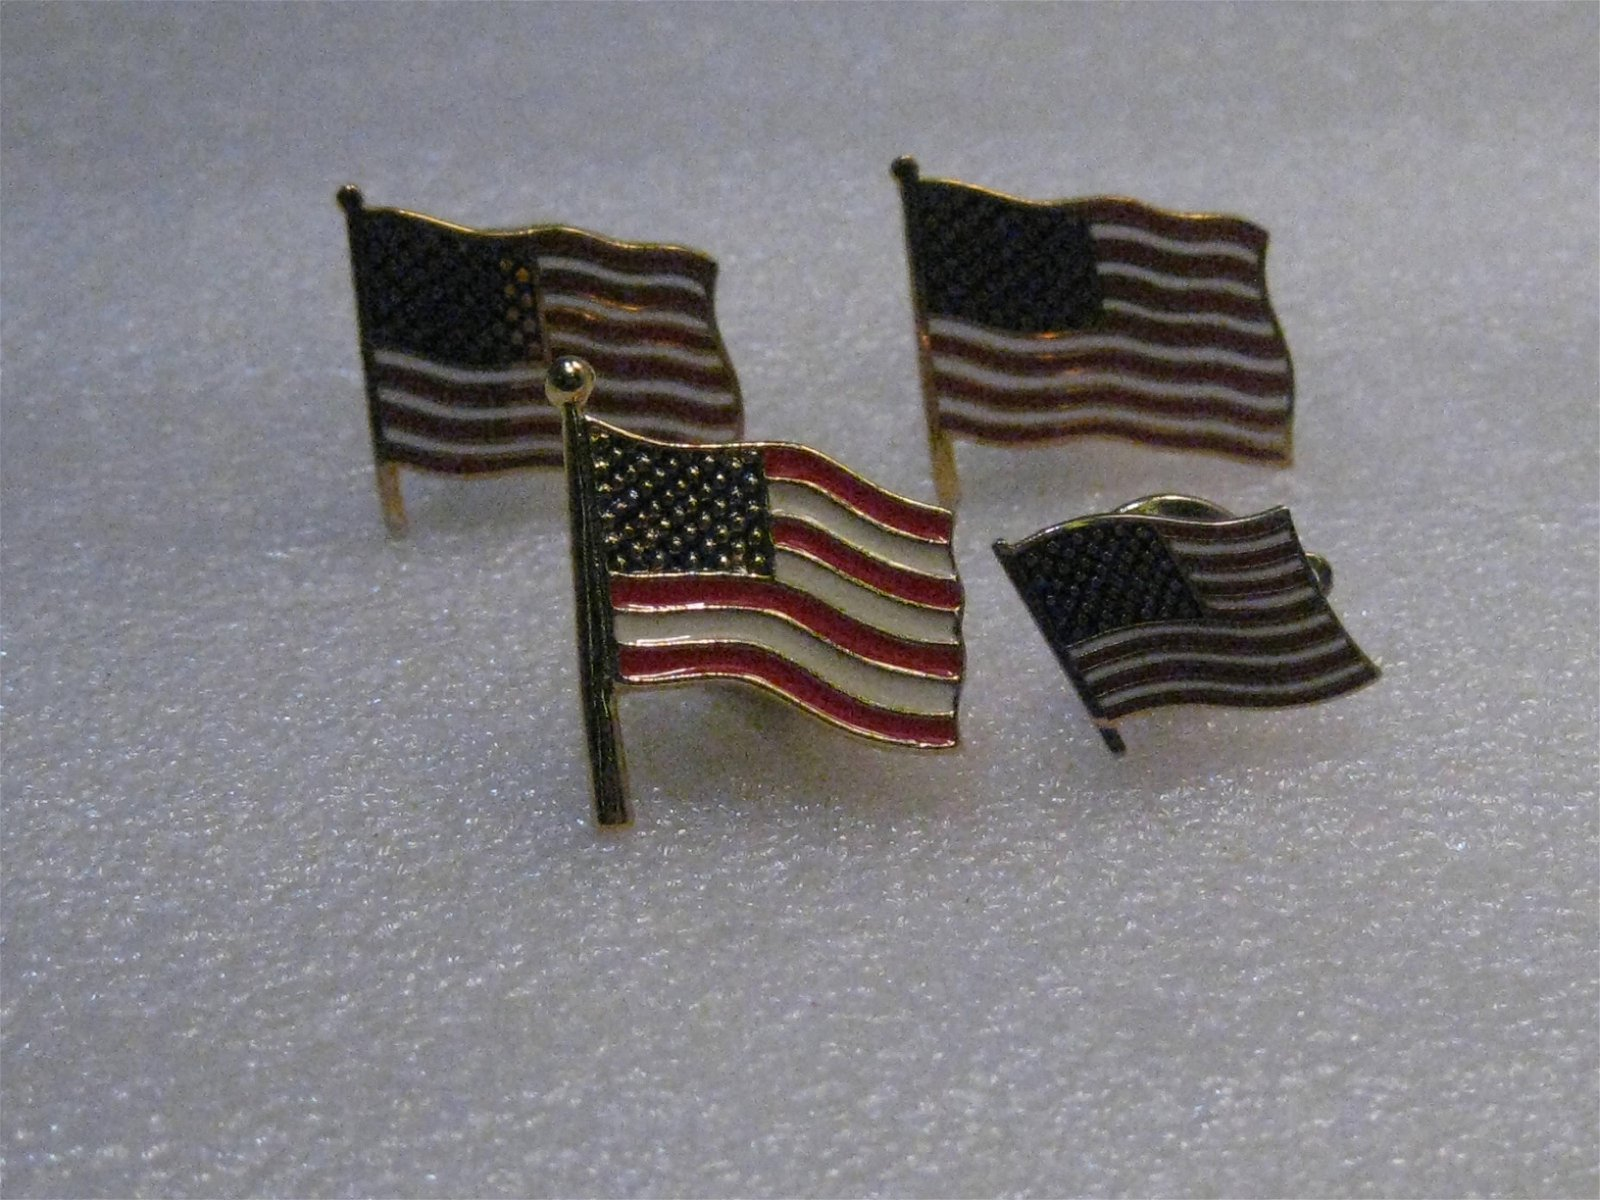 Vintage Dante USA Flag Cuff Links, Enameled with two